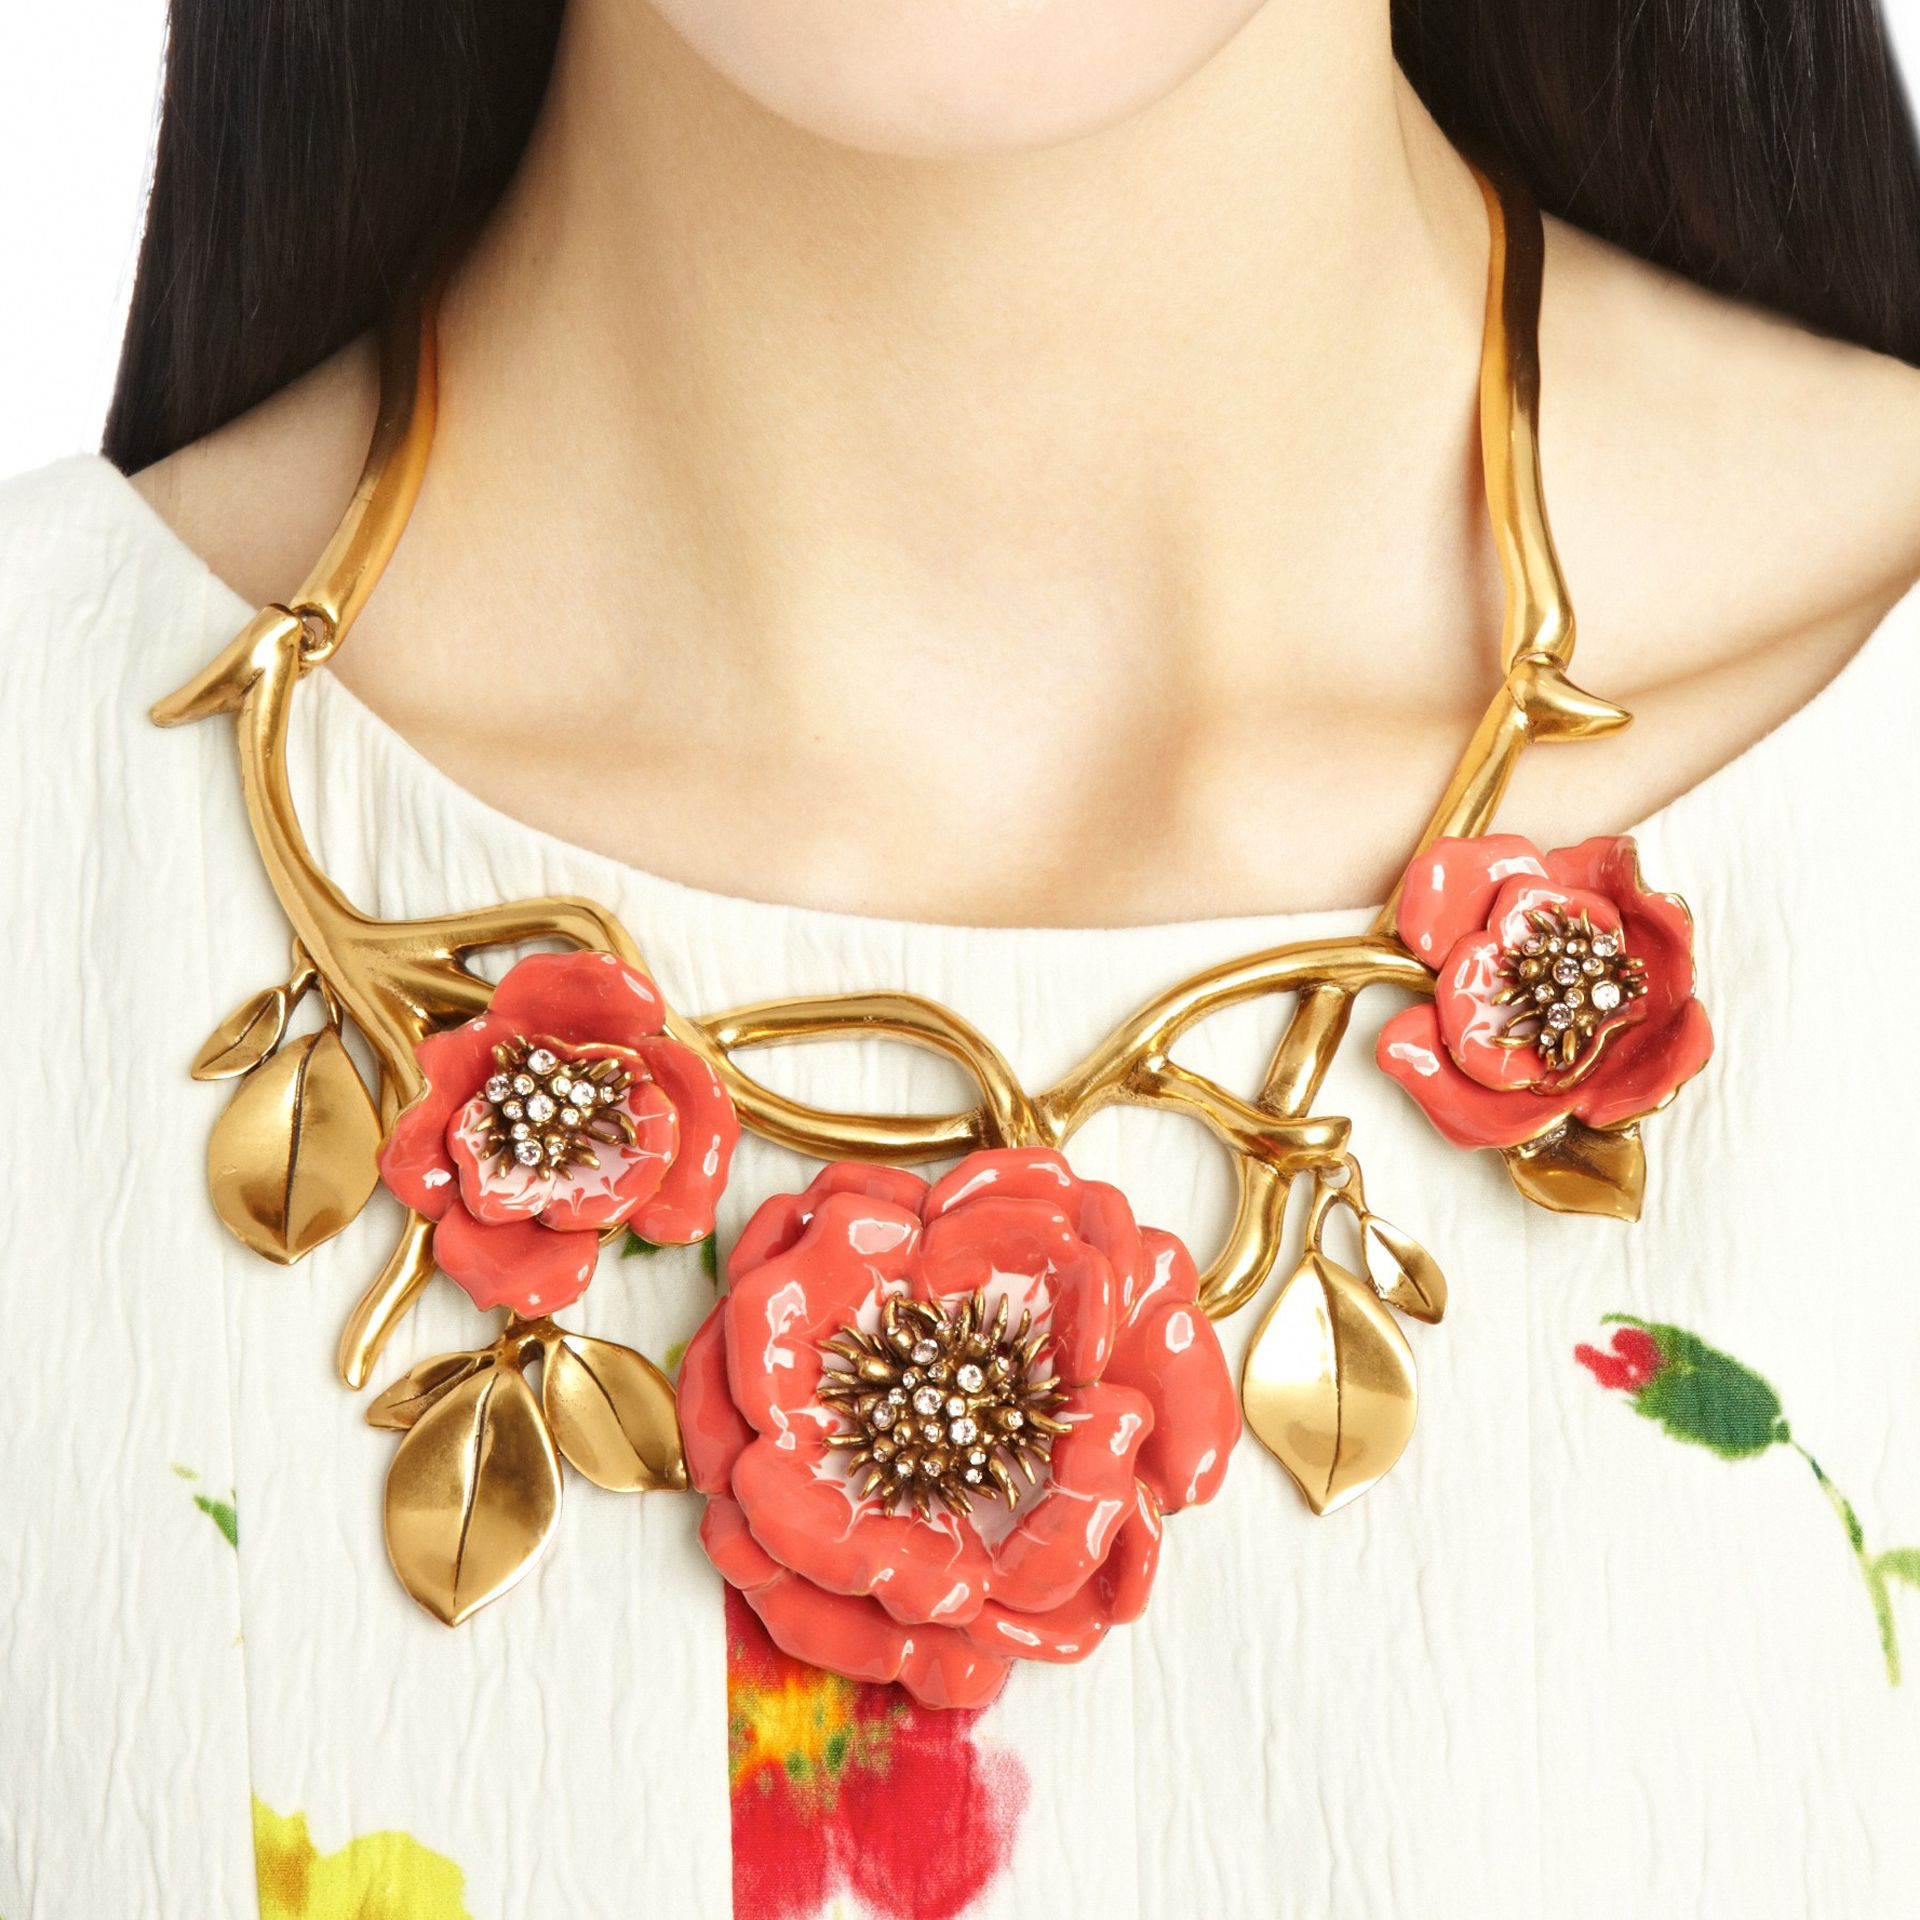 Go full throttle into spring with this must have floral accessory.